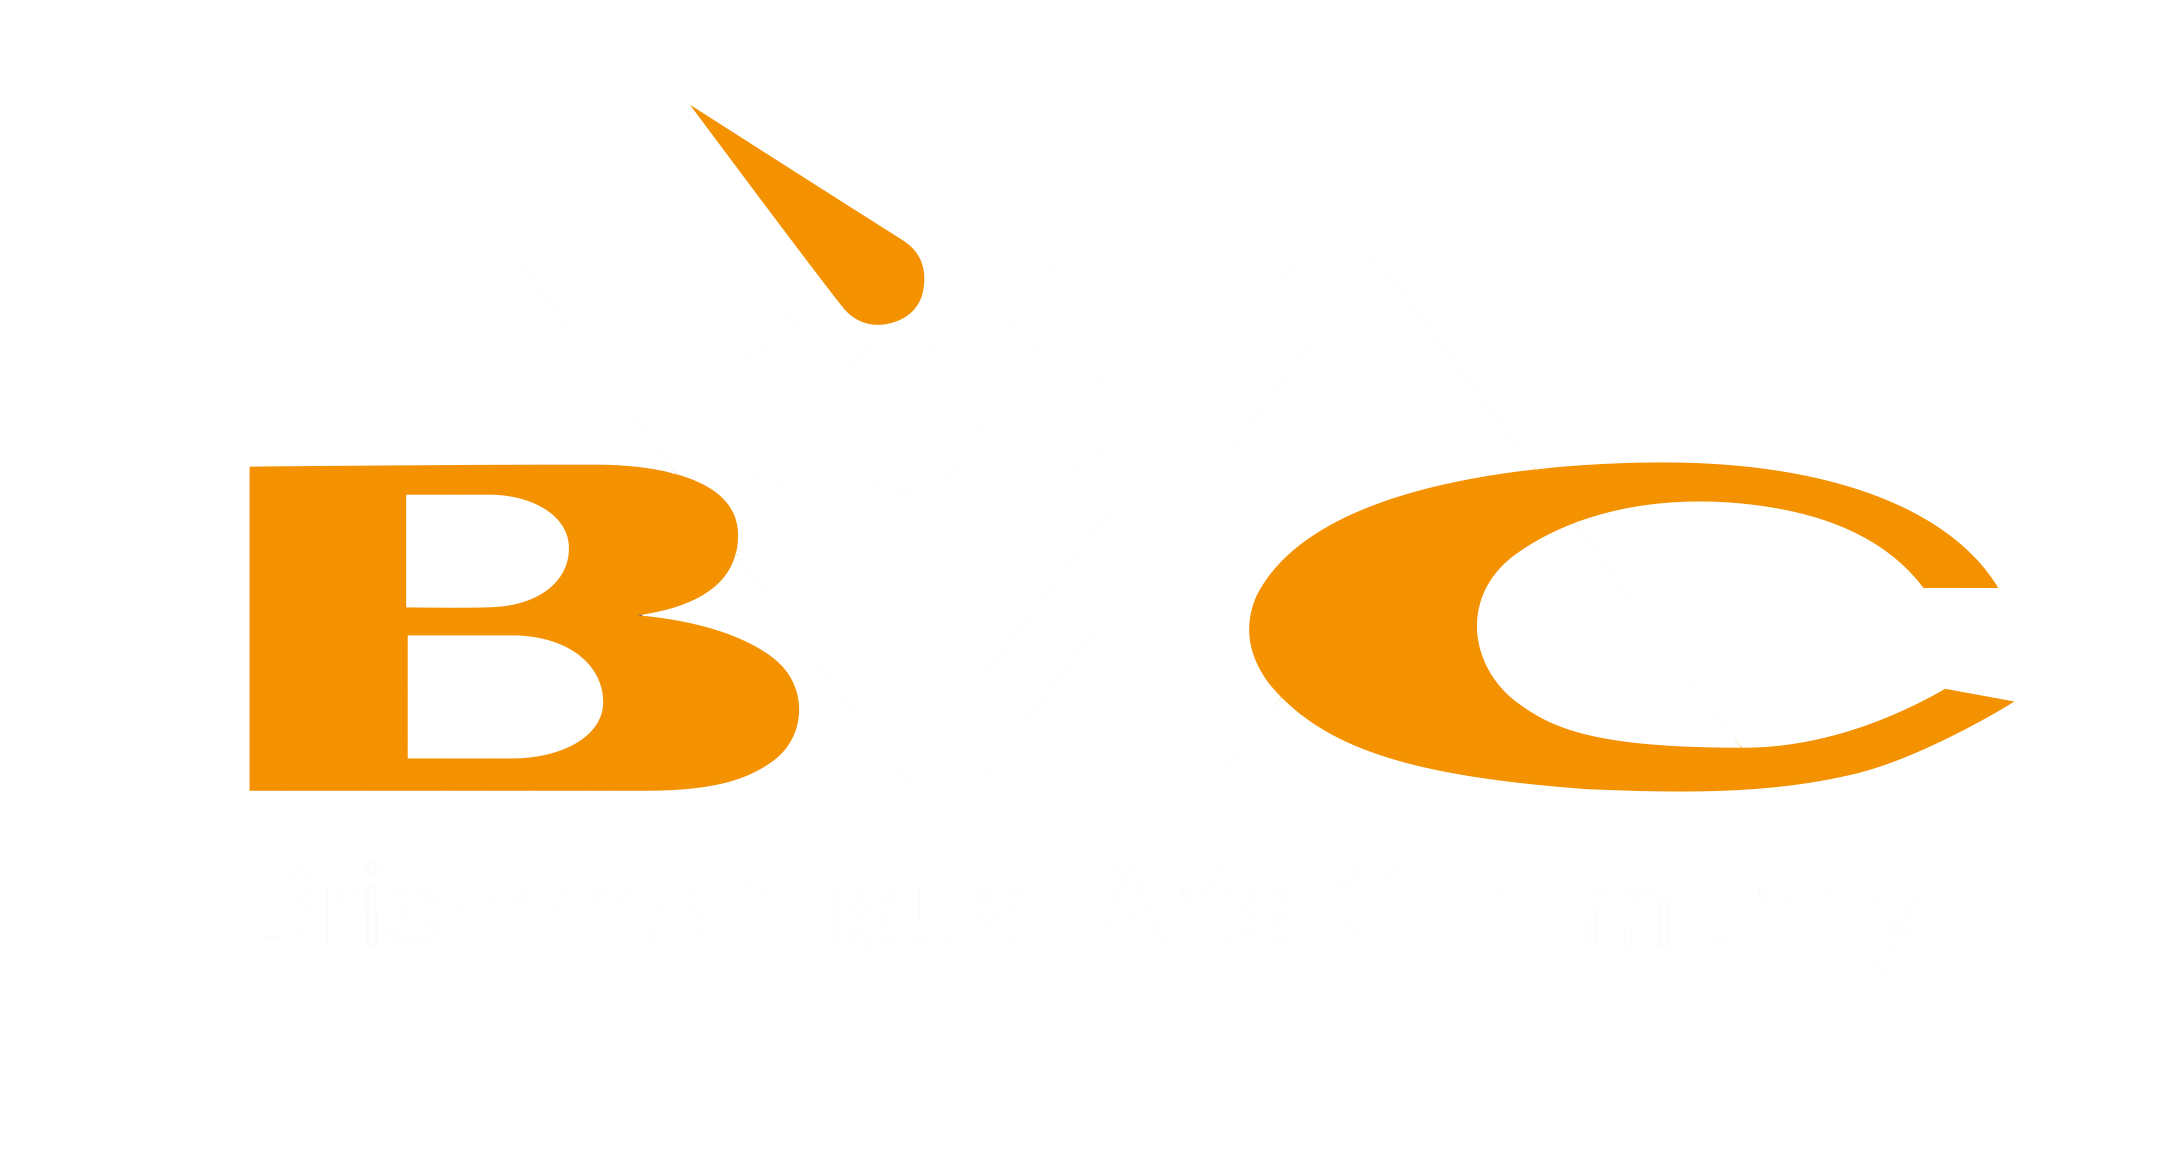 Brisbane Visual Arts Community